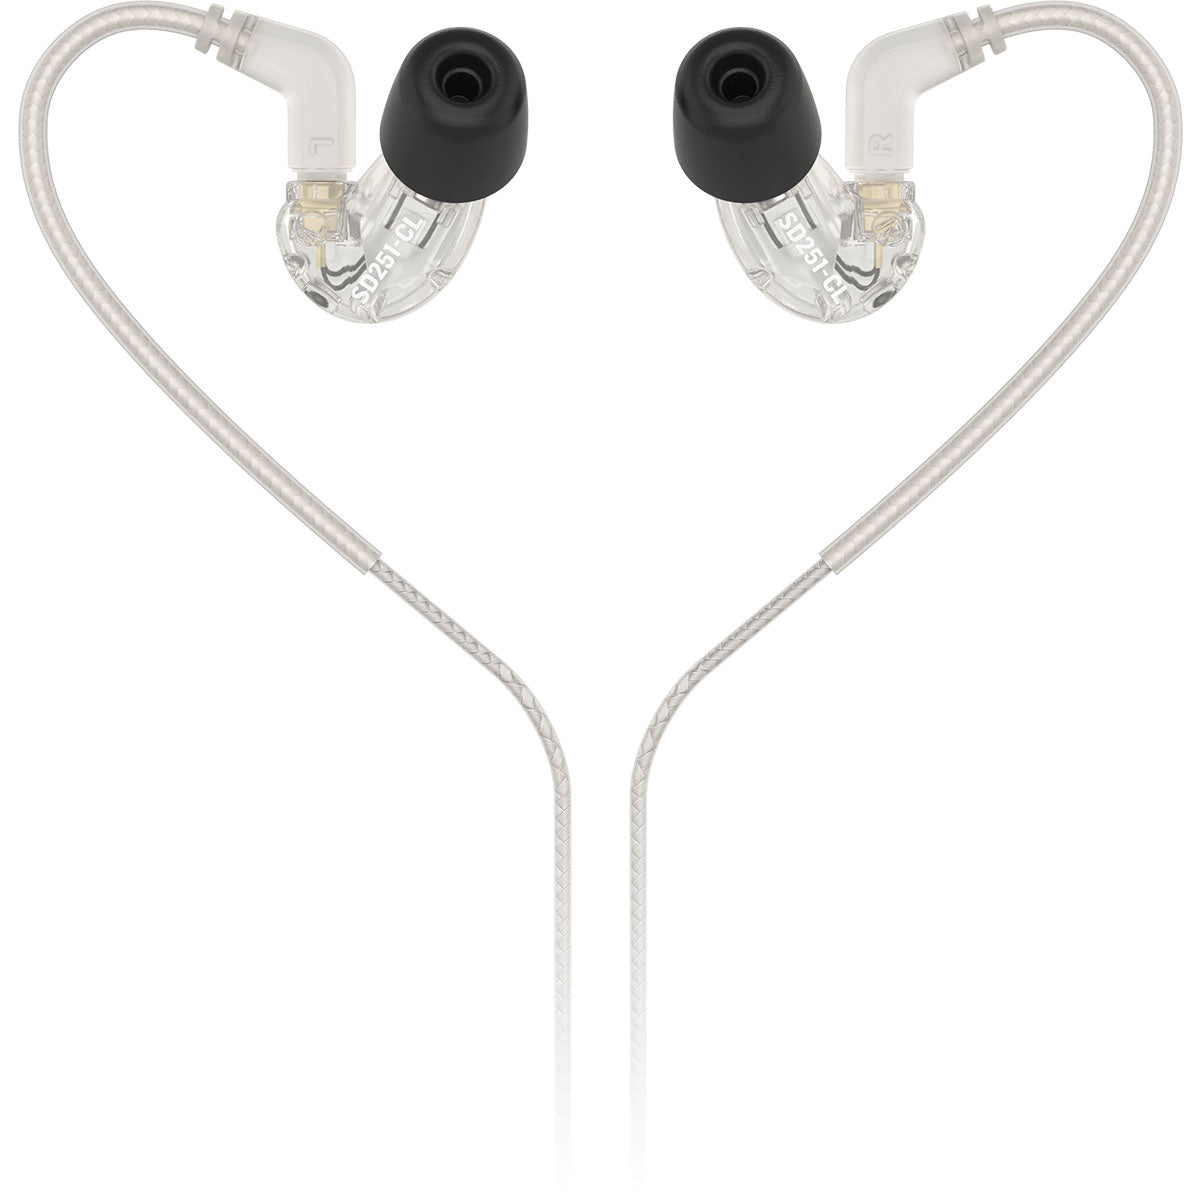 Behringer SD251-CL Clear Studio Monitoring Earphones In-Ear Monitors